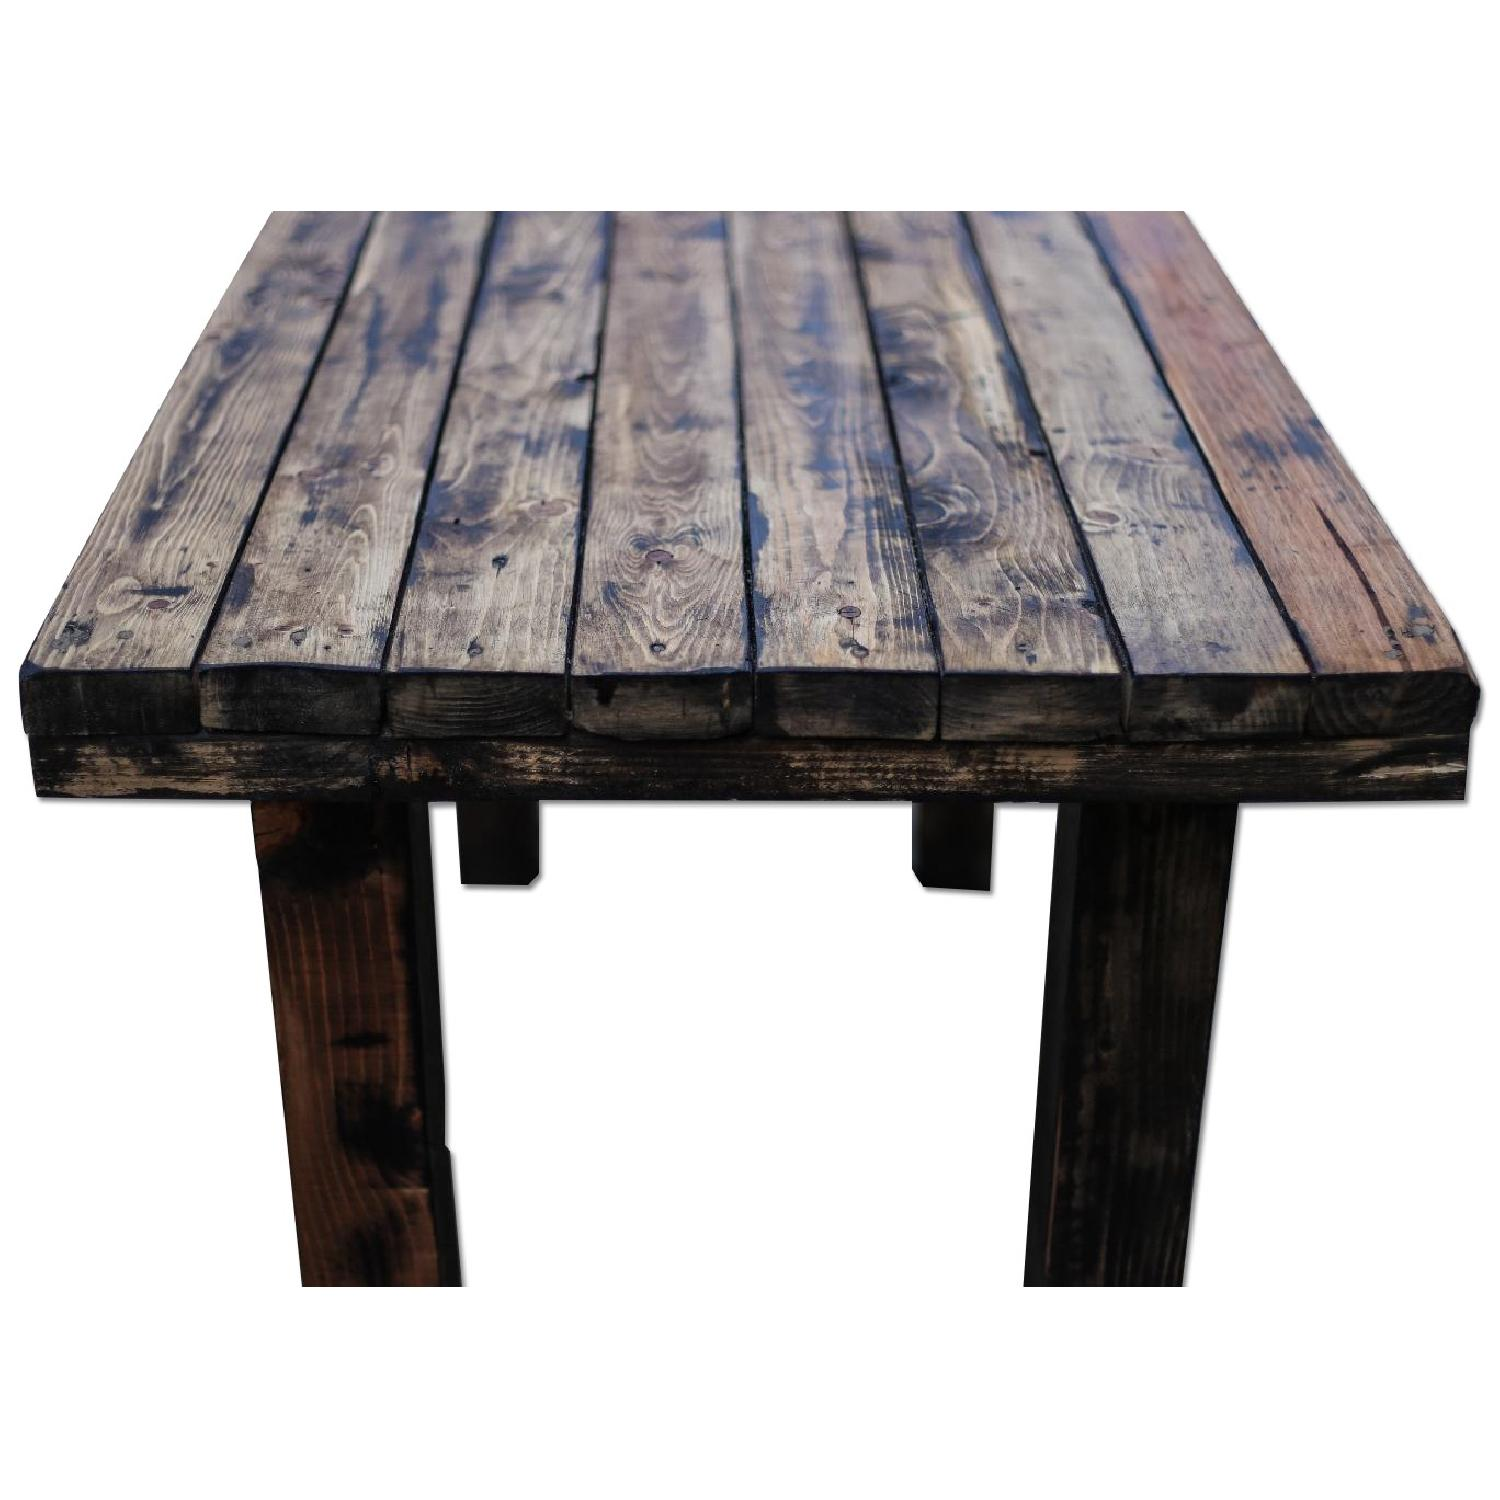 Creative X Soul Rustic Table w/ 2 Benches